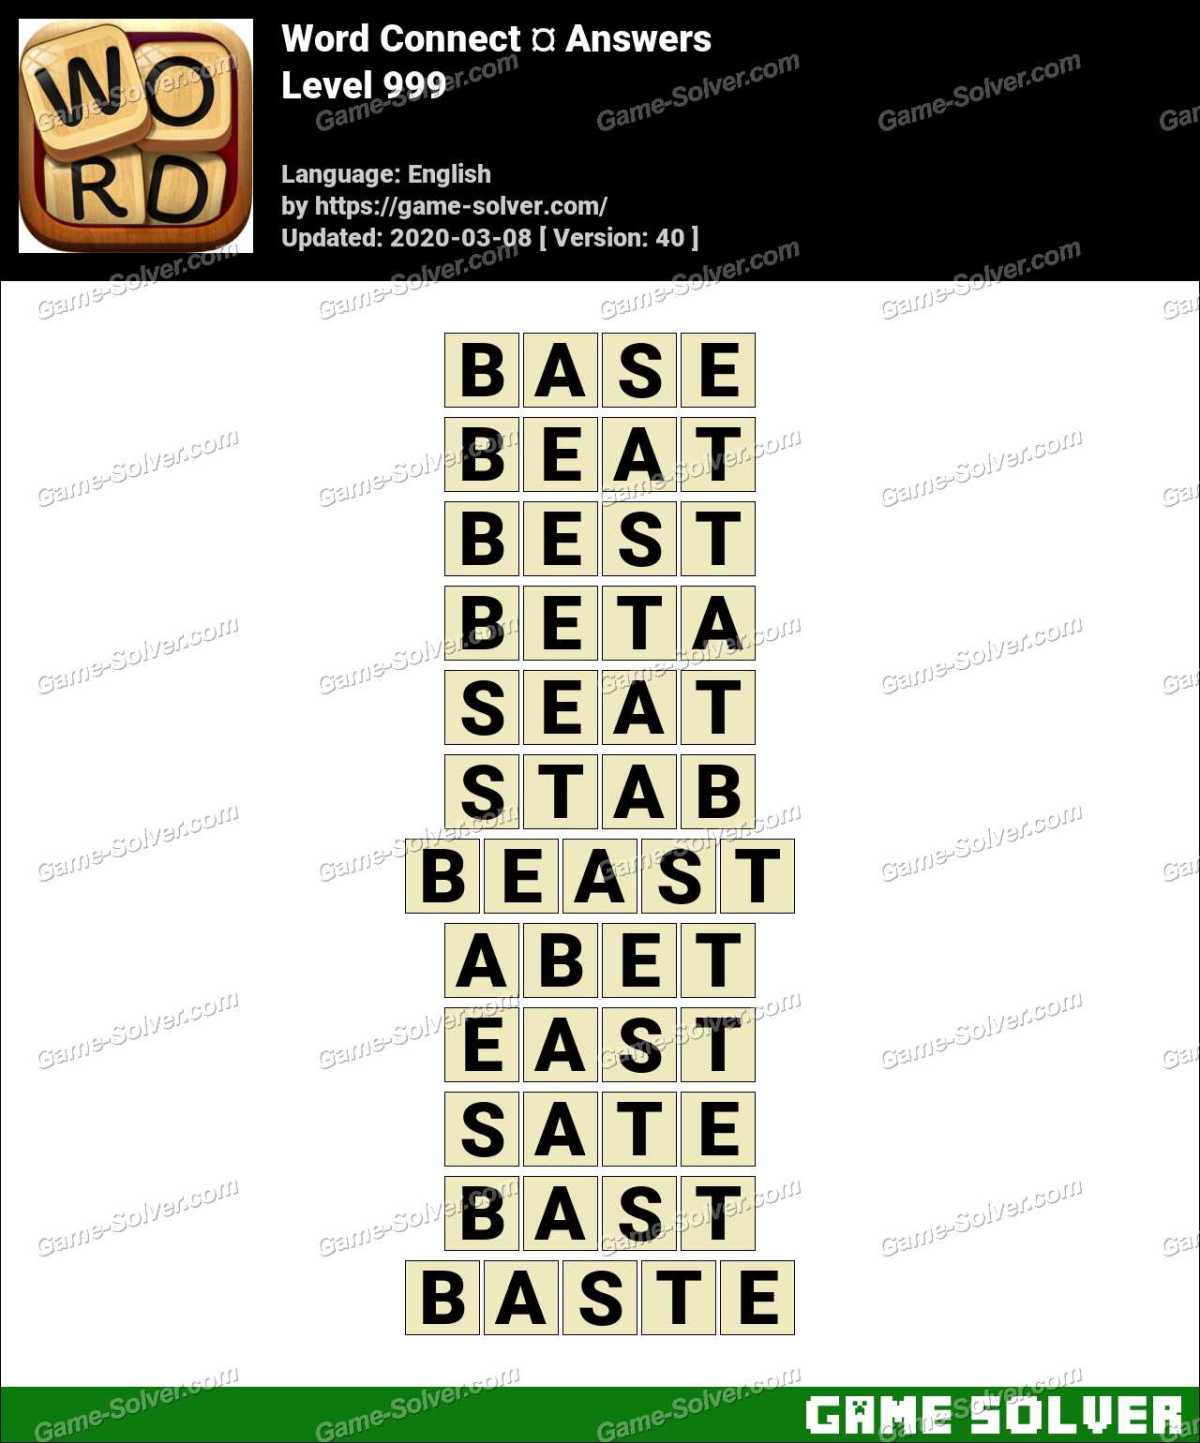 Word Connect Level 999 Answers